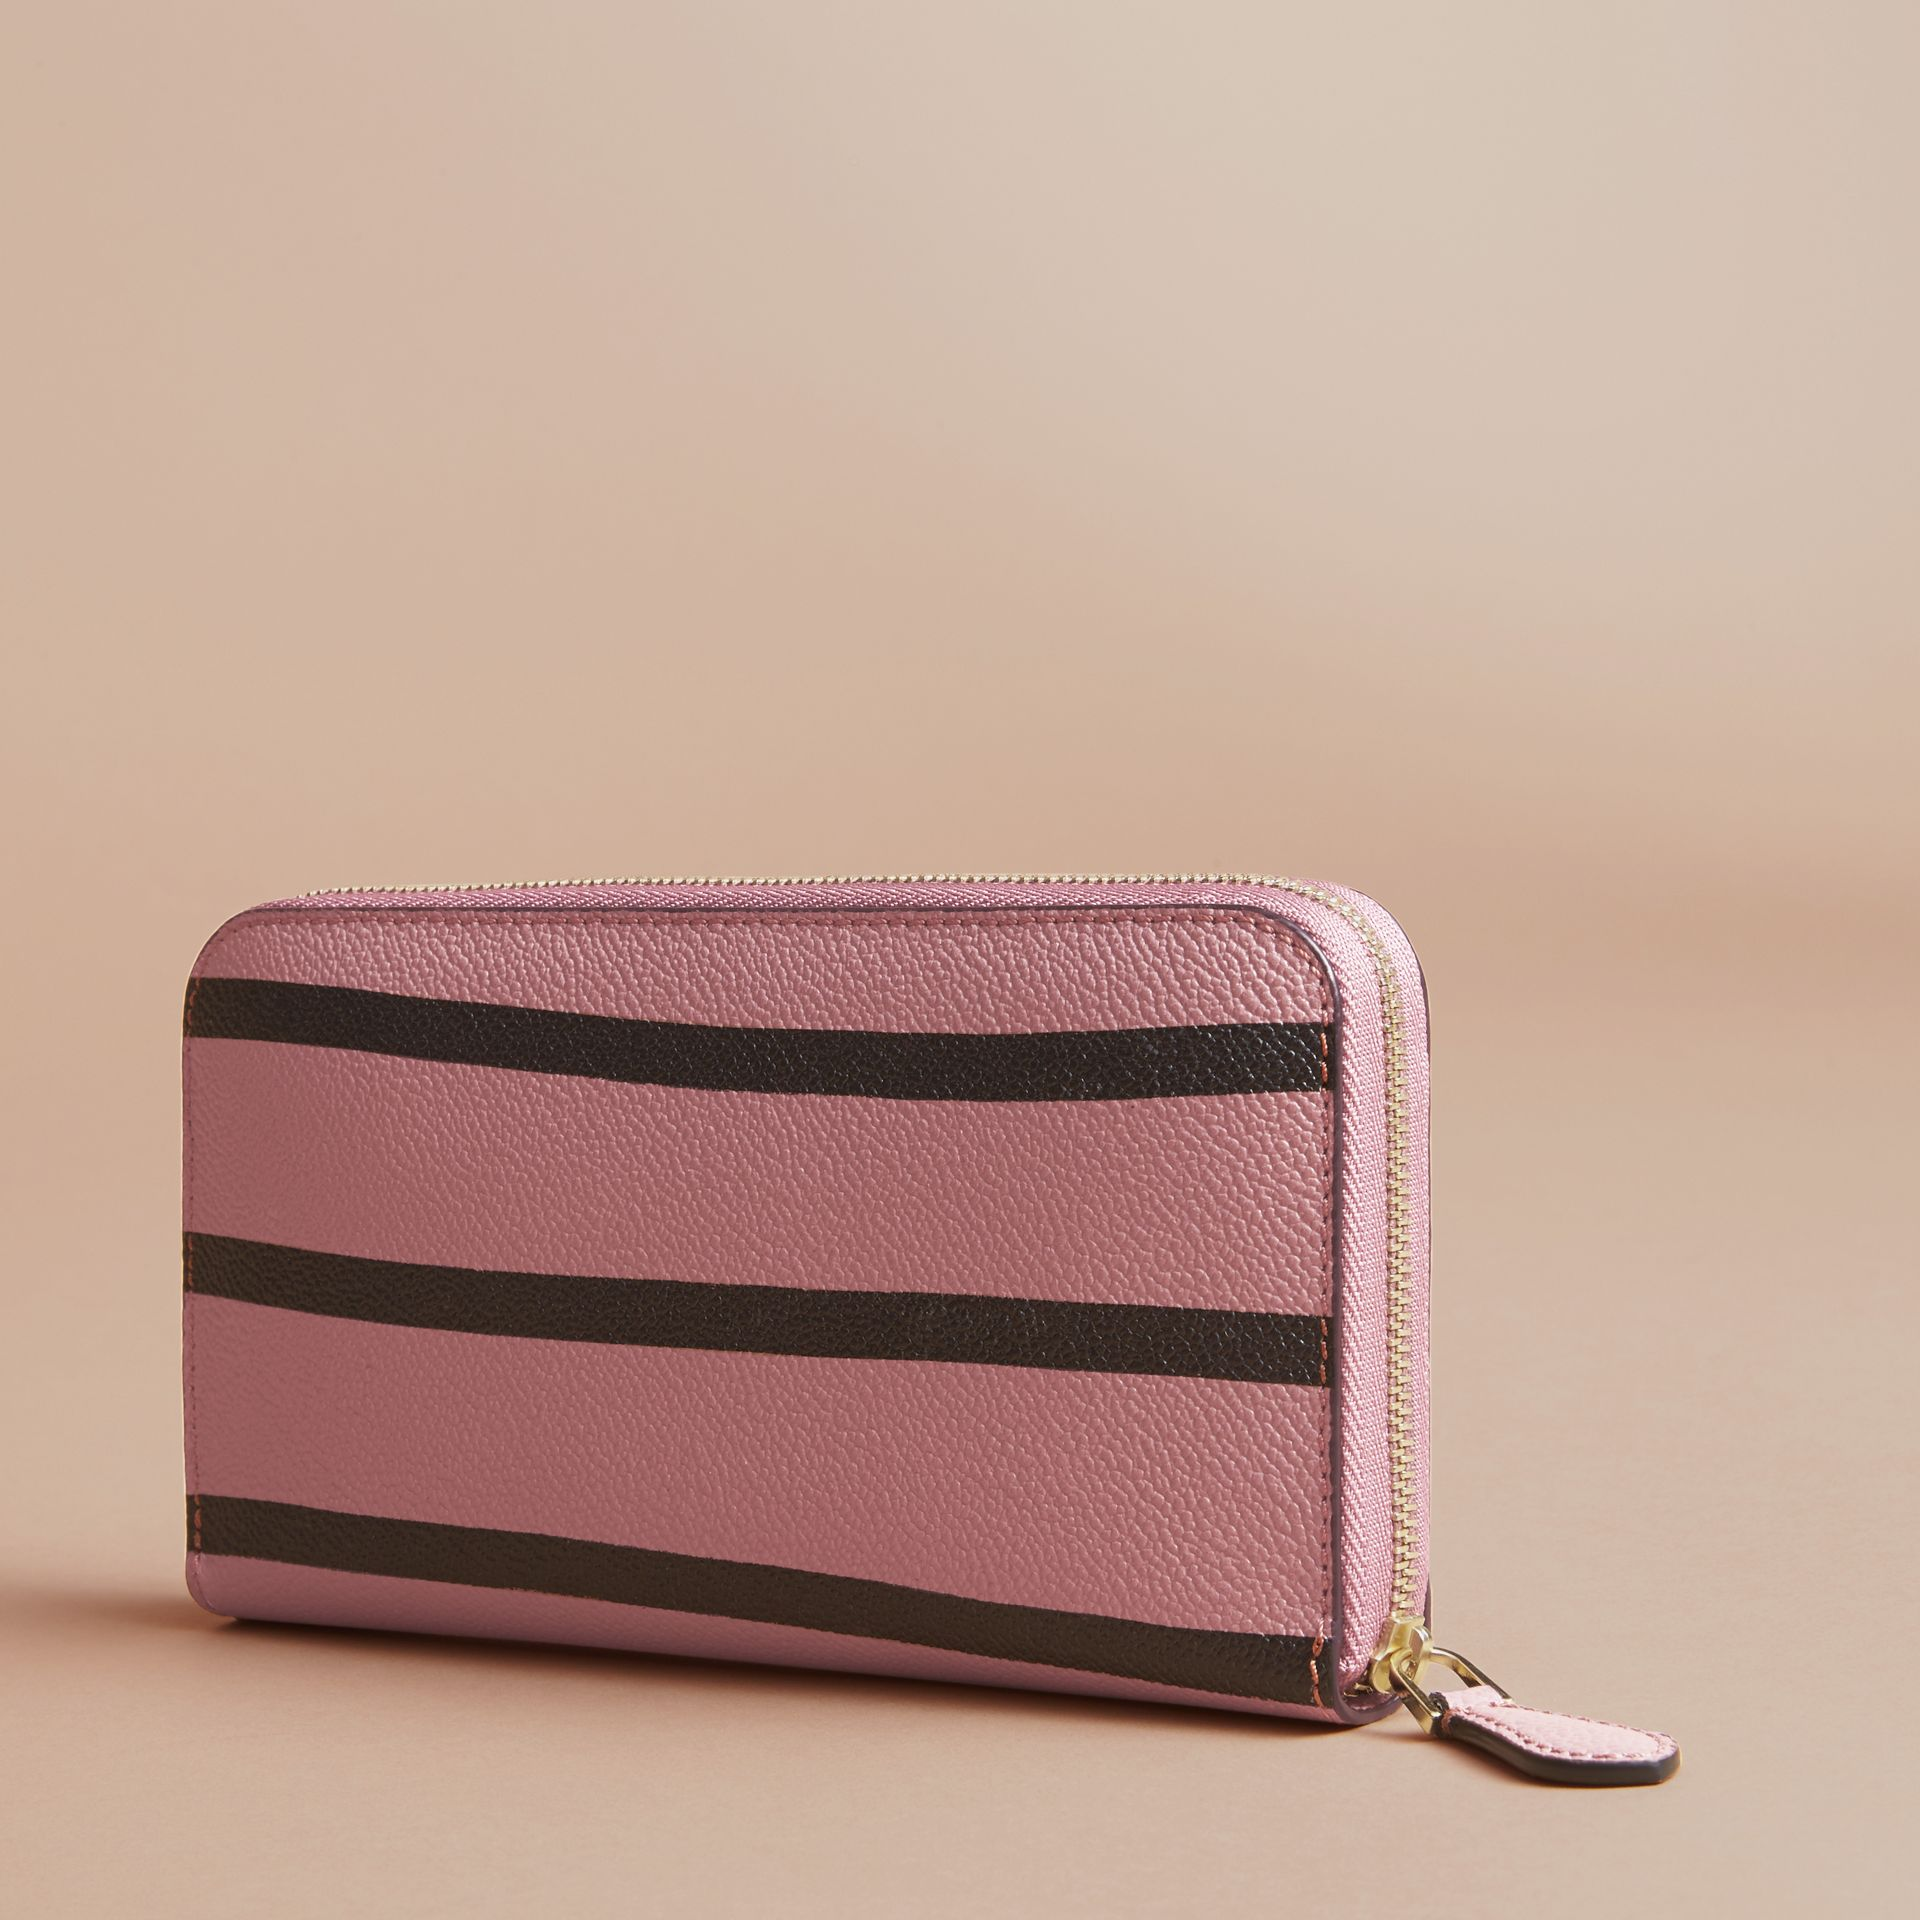 Trompe L'oeil Print Leather Ziparound Wallet in Dusty Pink - Women | Burberry - gallery image 6